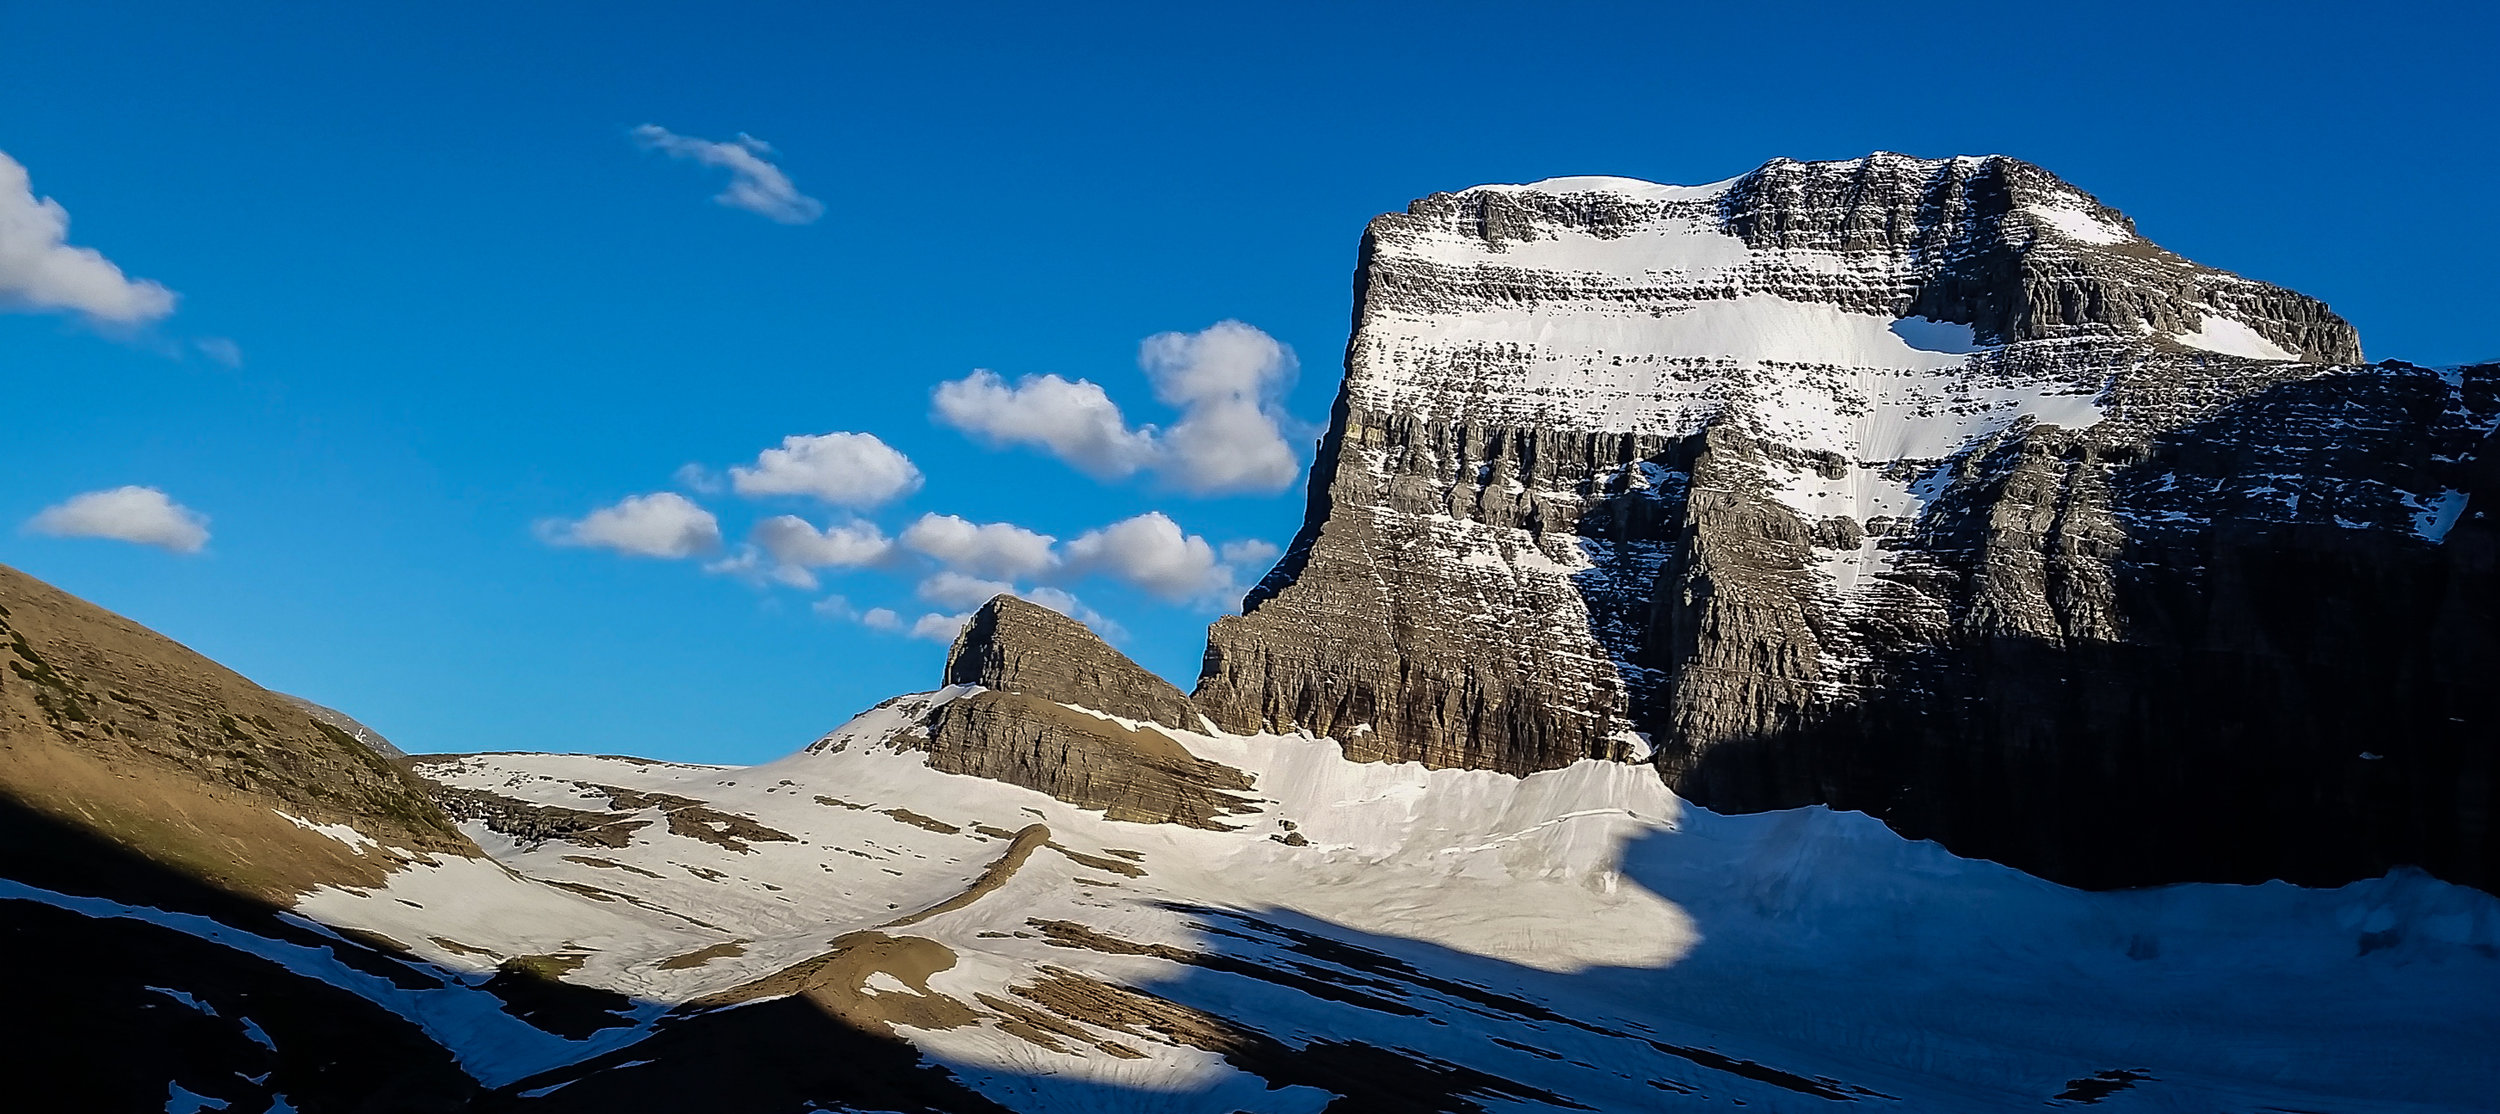 Mt Gould, with the edges of Grinnell Glacier creeping up the sides.